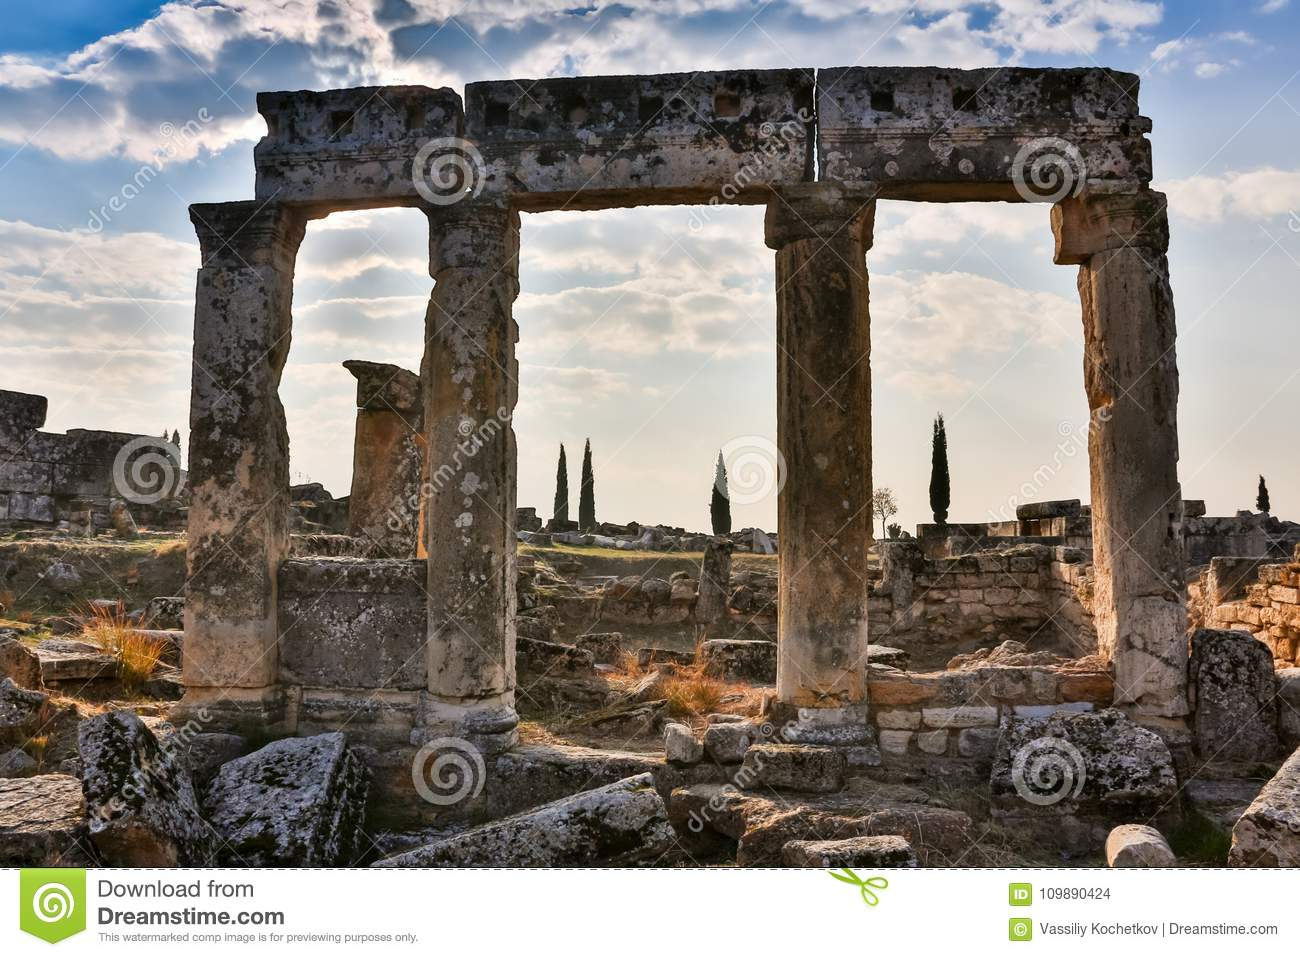 Ruins of Appollo temple with fortress at back in ancient Corinth, Peloponnese, Greece